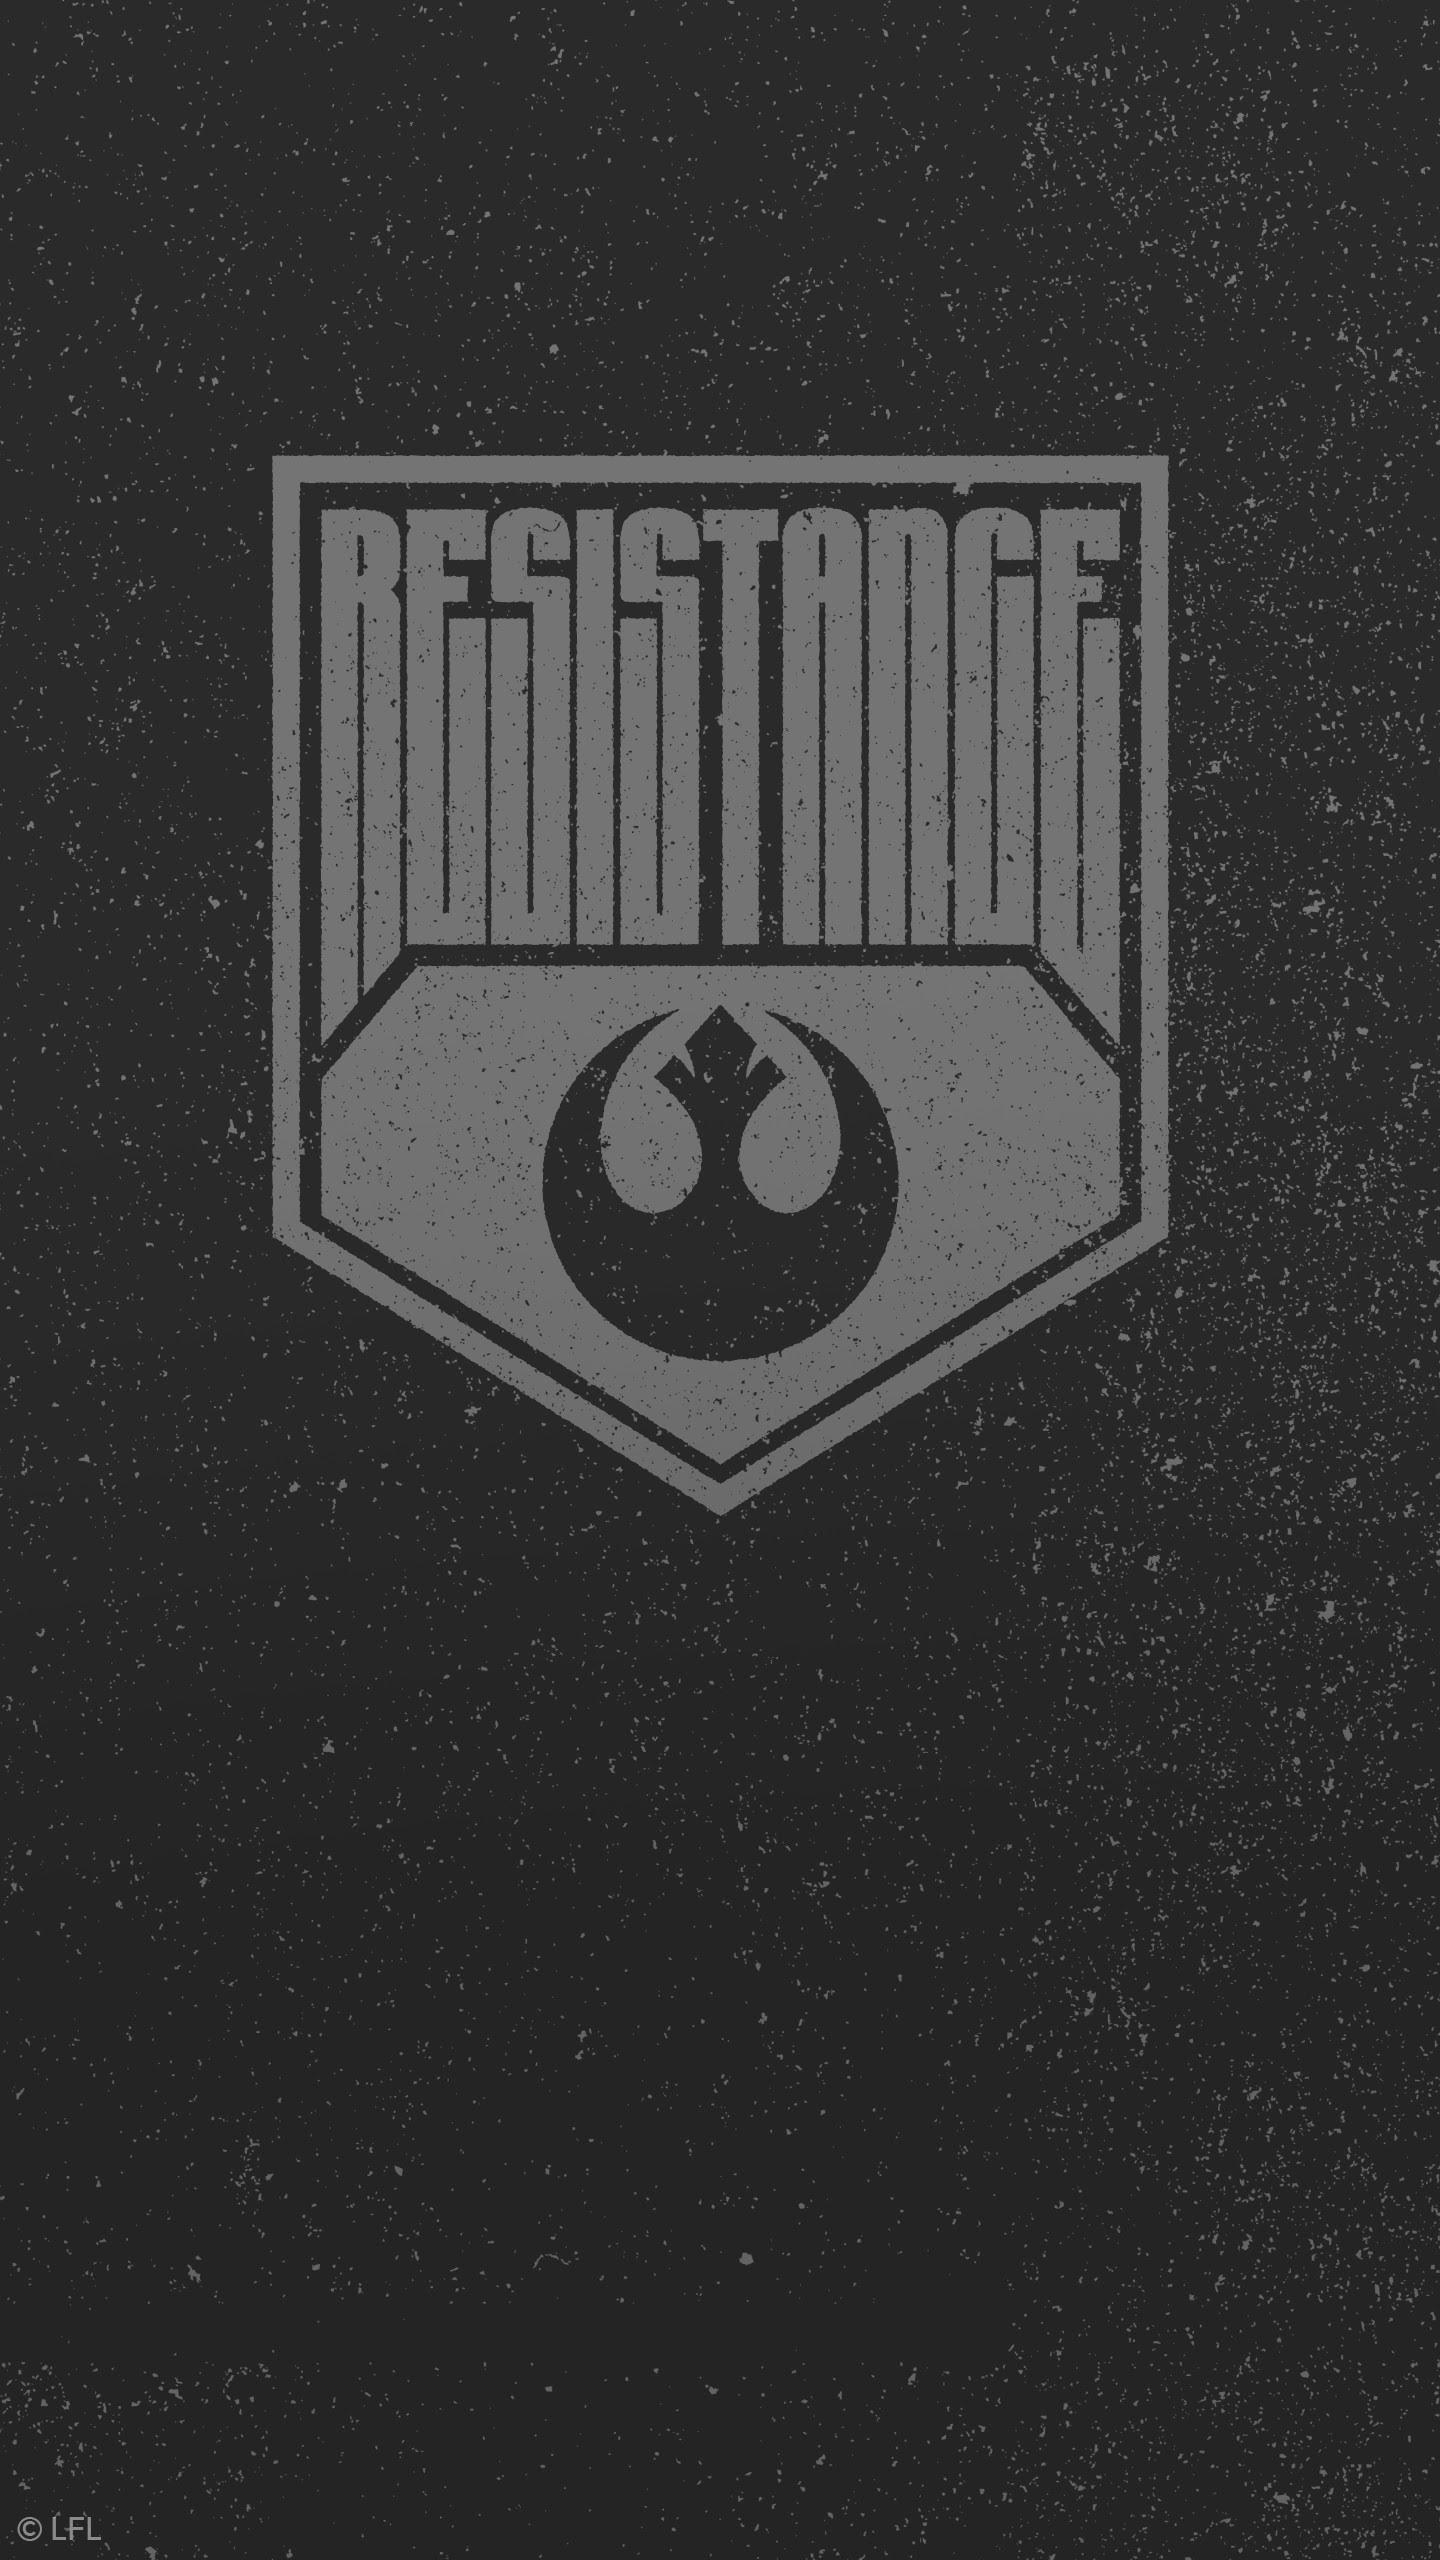 Star Wars Wallpaper For Android 69 Images